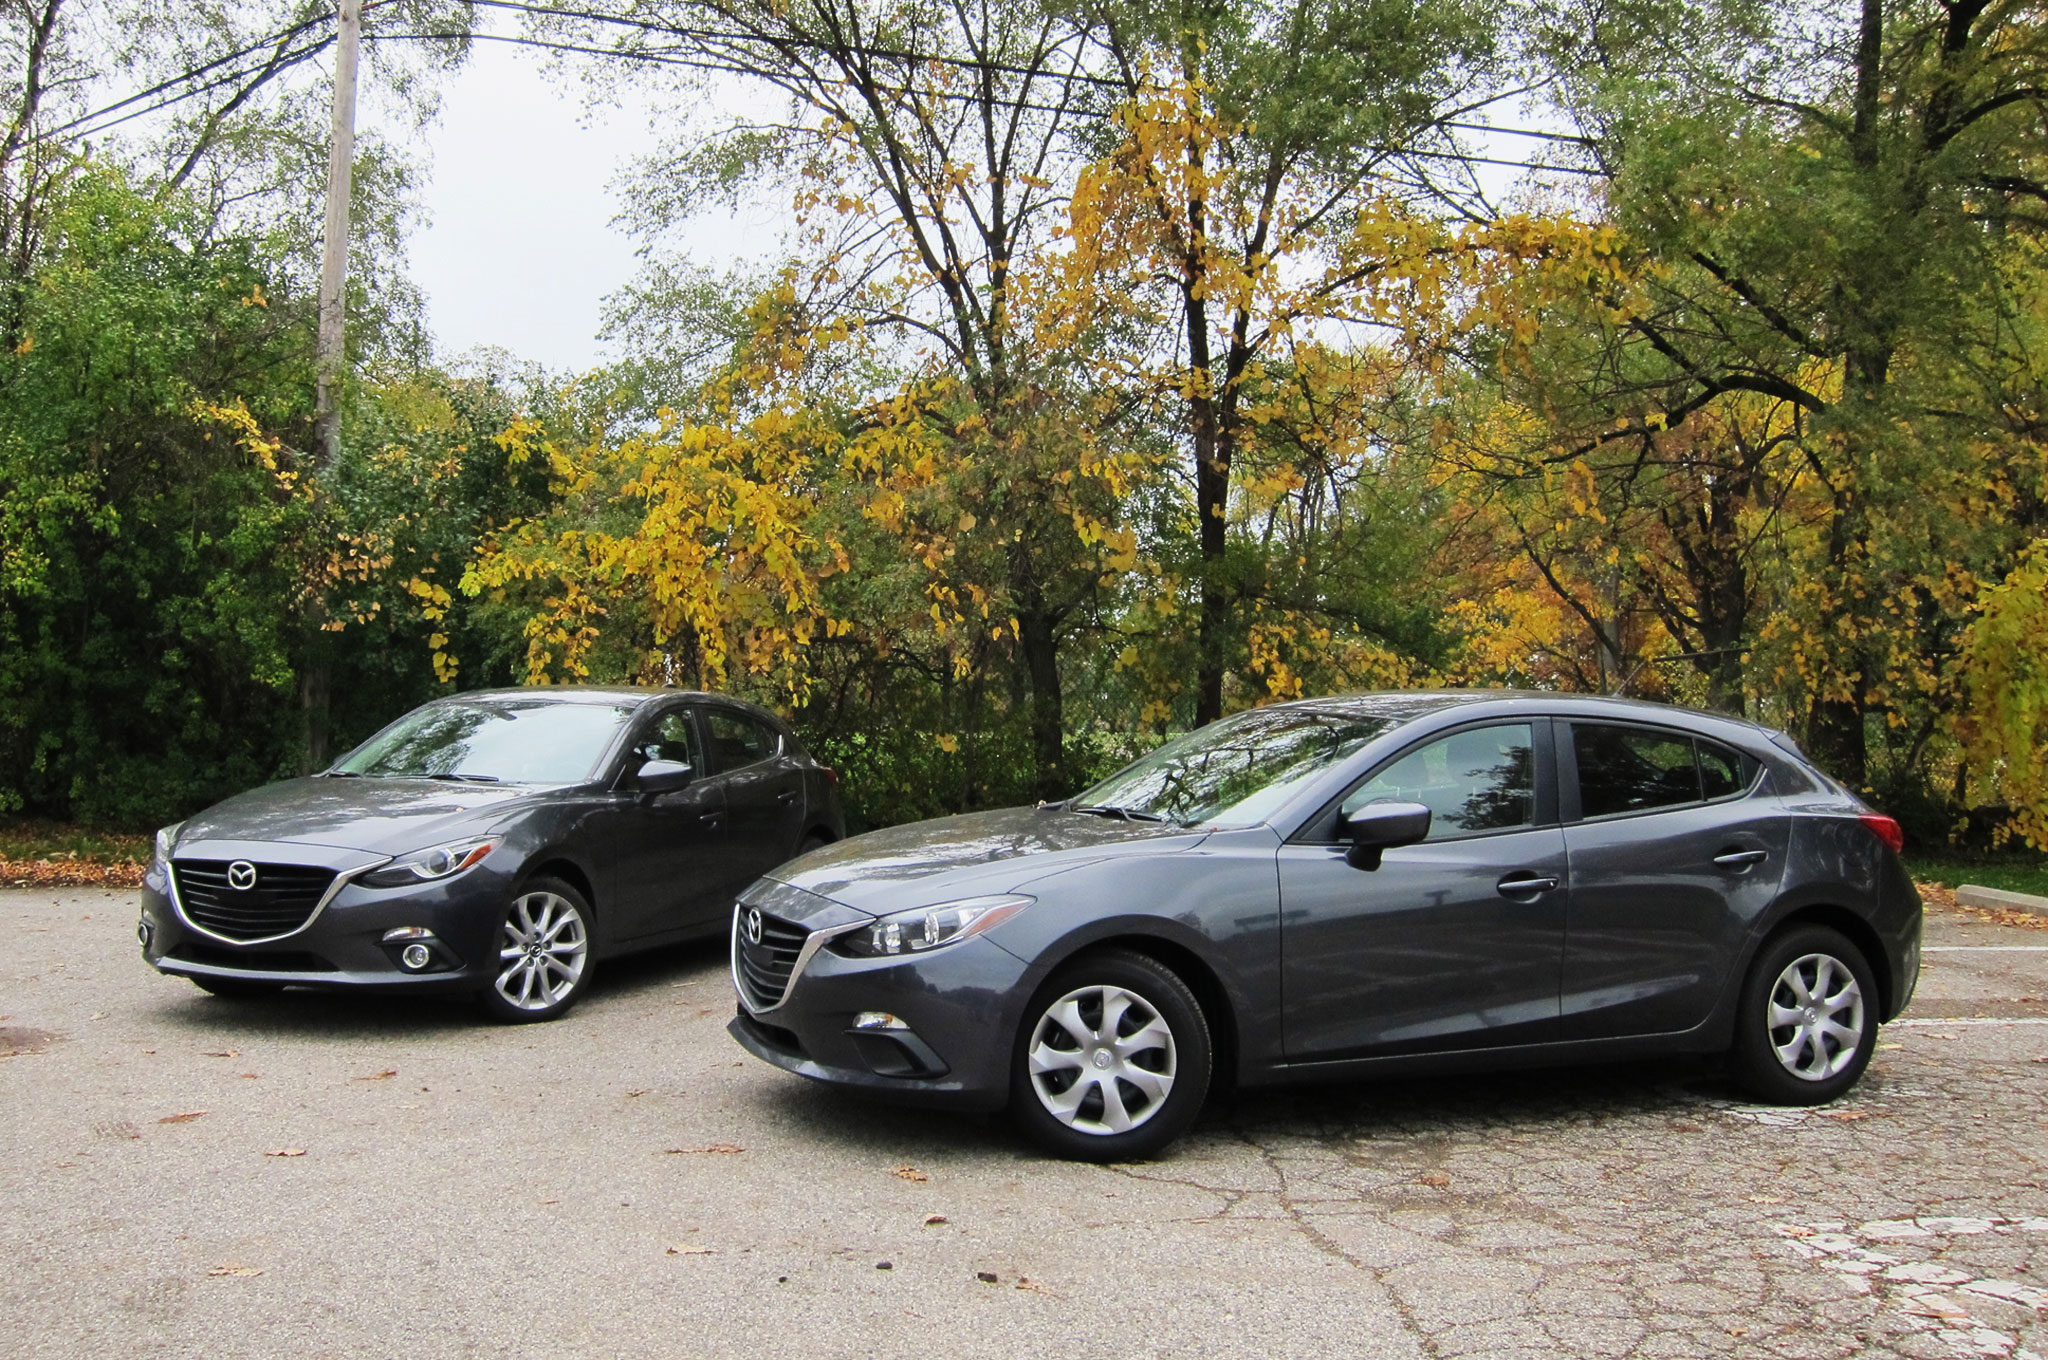 2014 Mazda 3 S Touring Getting Noticed